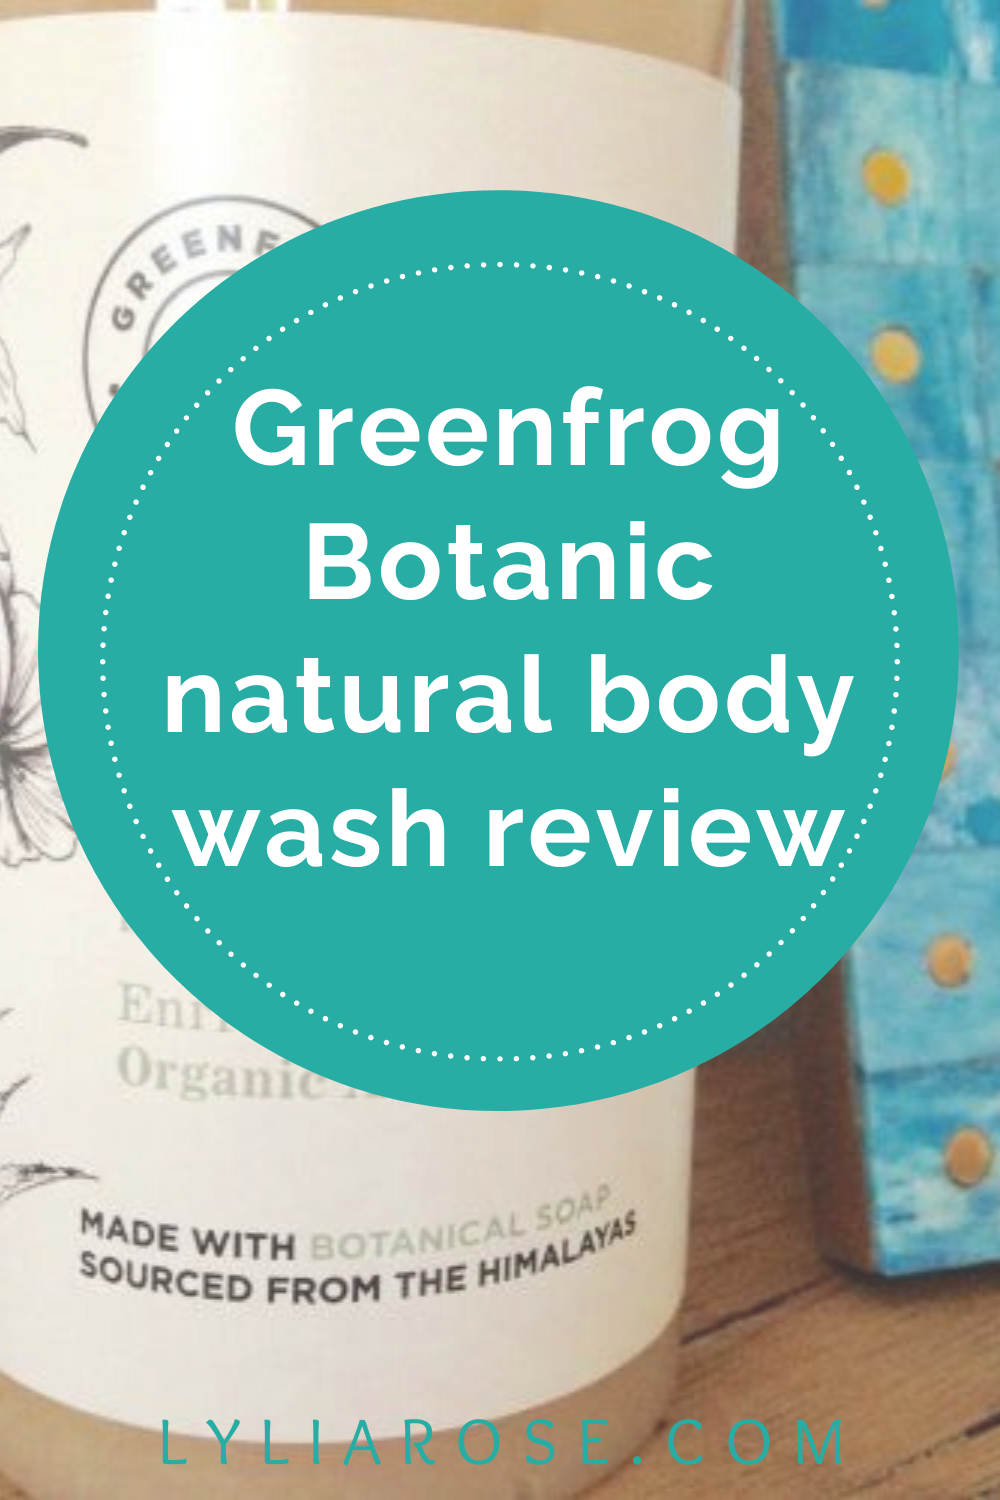 Greenfrog Botanic natural body wash review (2)